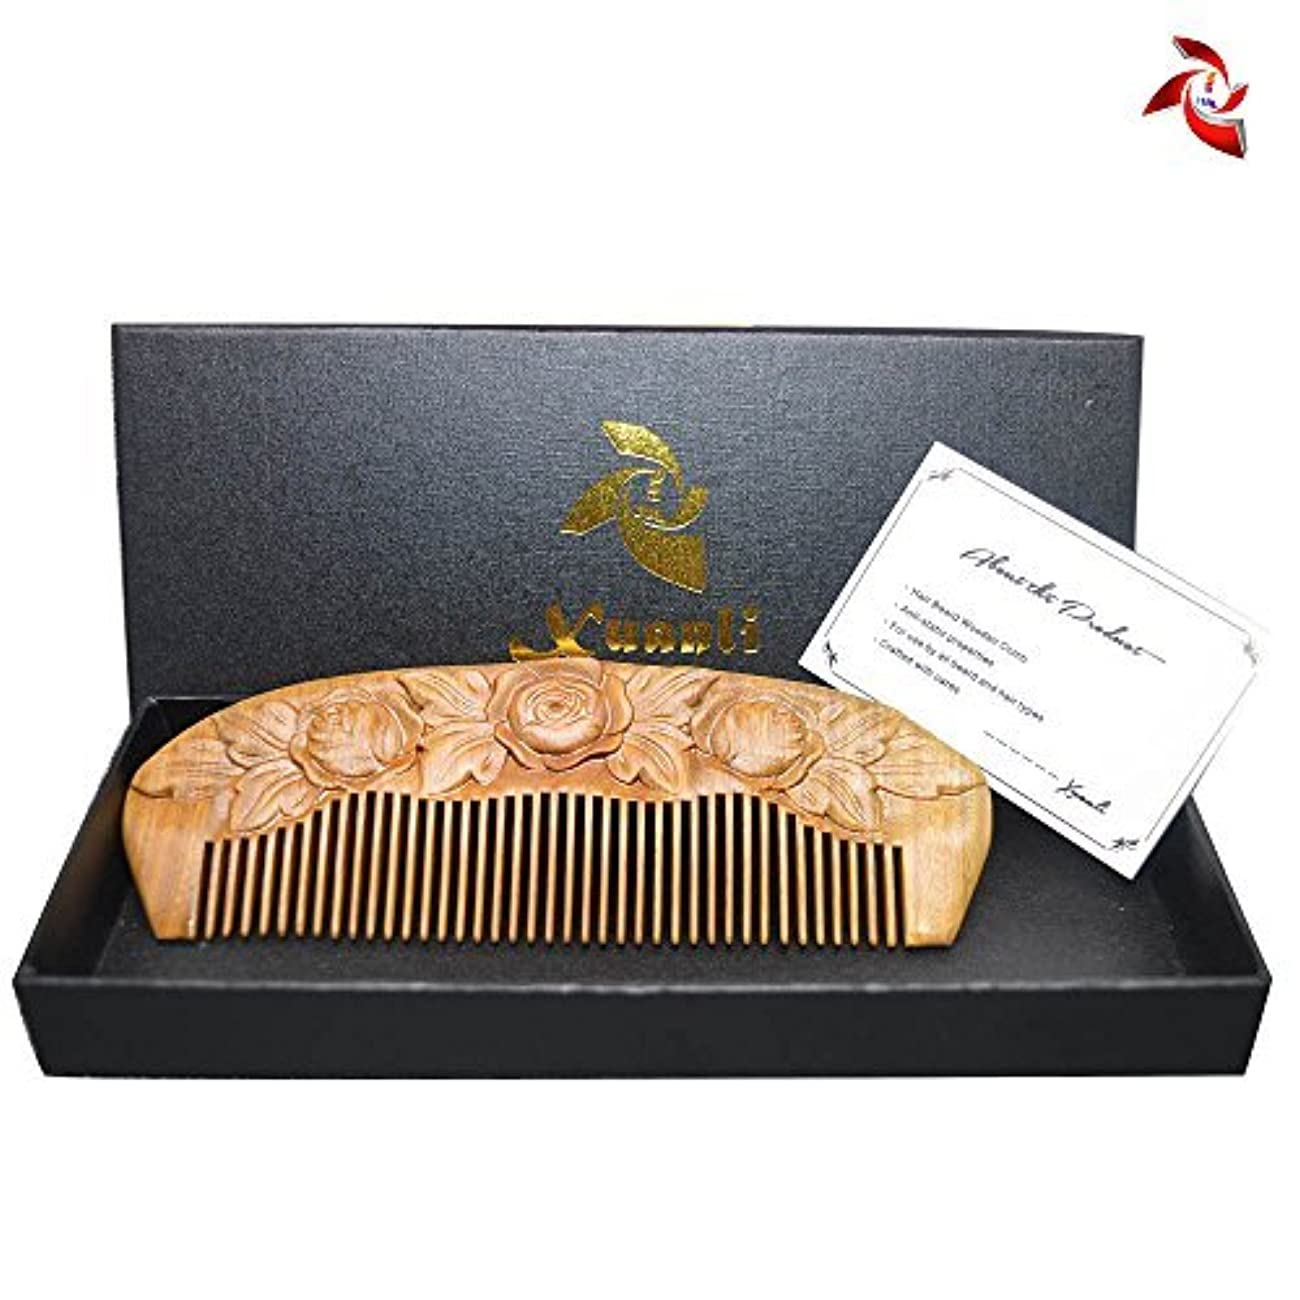 説明する画像によってXuanli Wood Combs Carving roses design Natural Green Sandalwood Combs Top Quality Handmade Combs For Hair No Static...